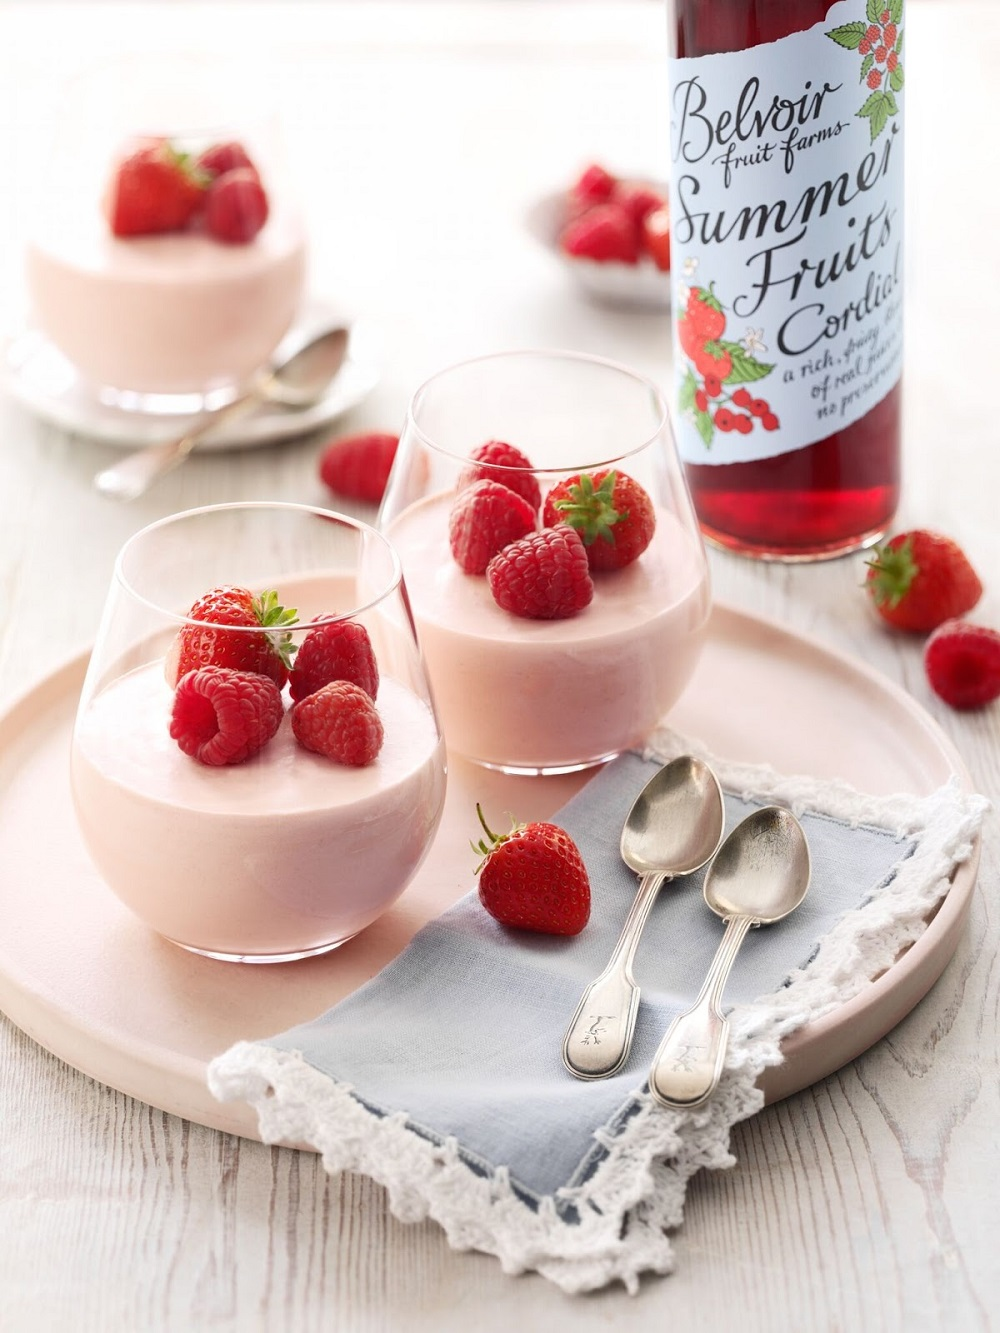 Strawberry And Raspberry Mousse: